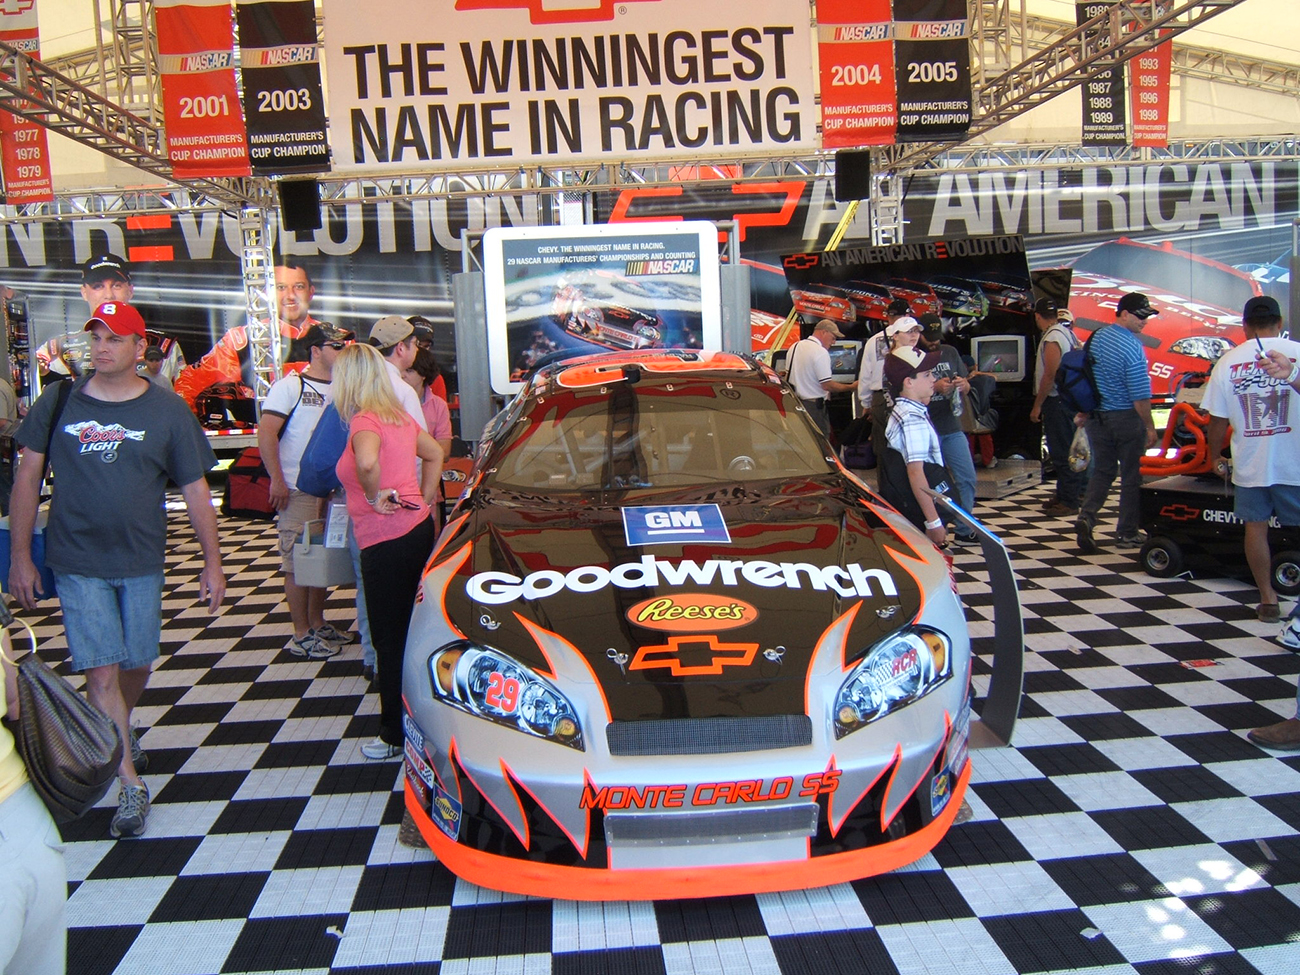 A photograph shows a group of people walking around a Nascar display area. There is a large Chevy racecar parked inside, covered in decals such as G M, Reese's candy, and Good wrench.